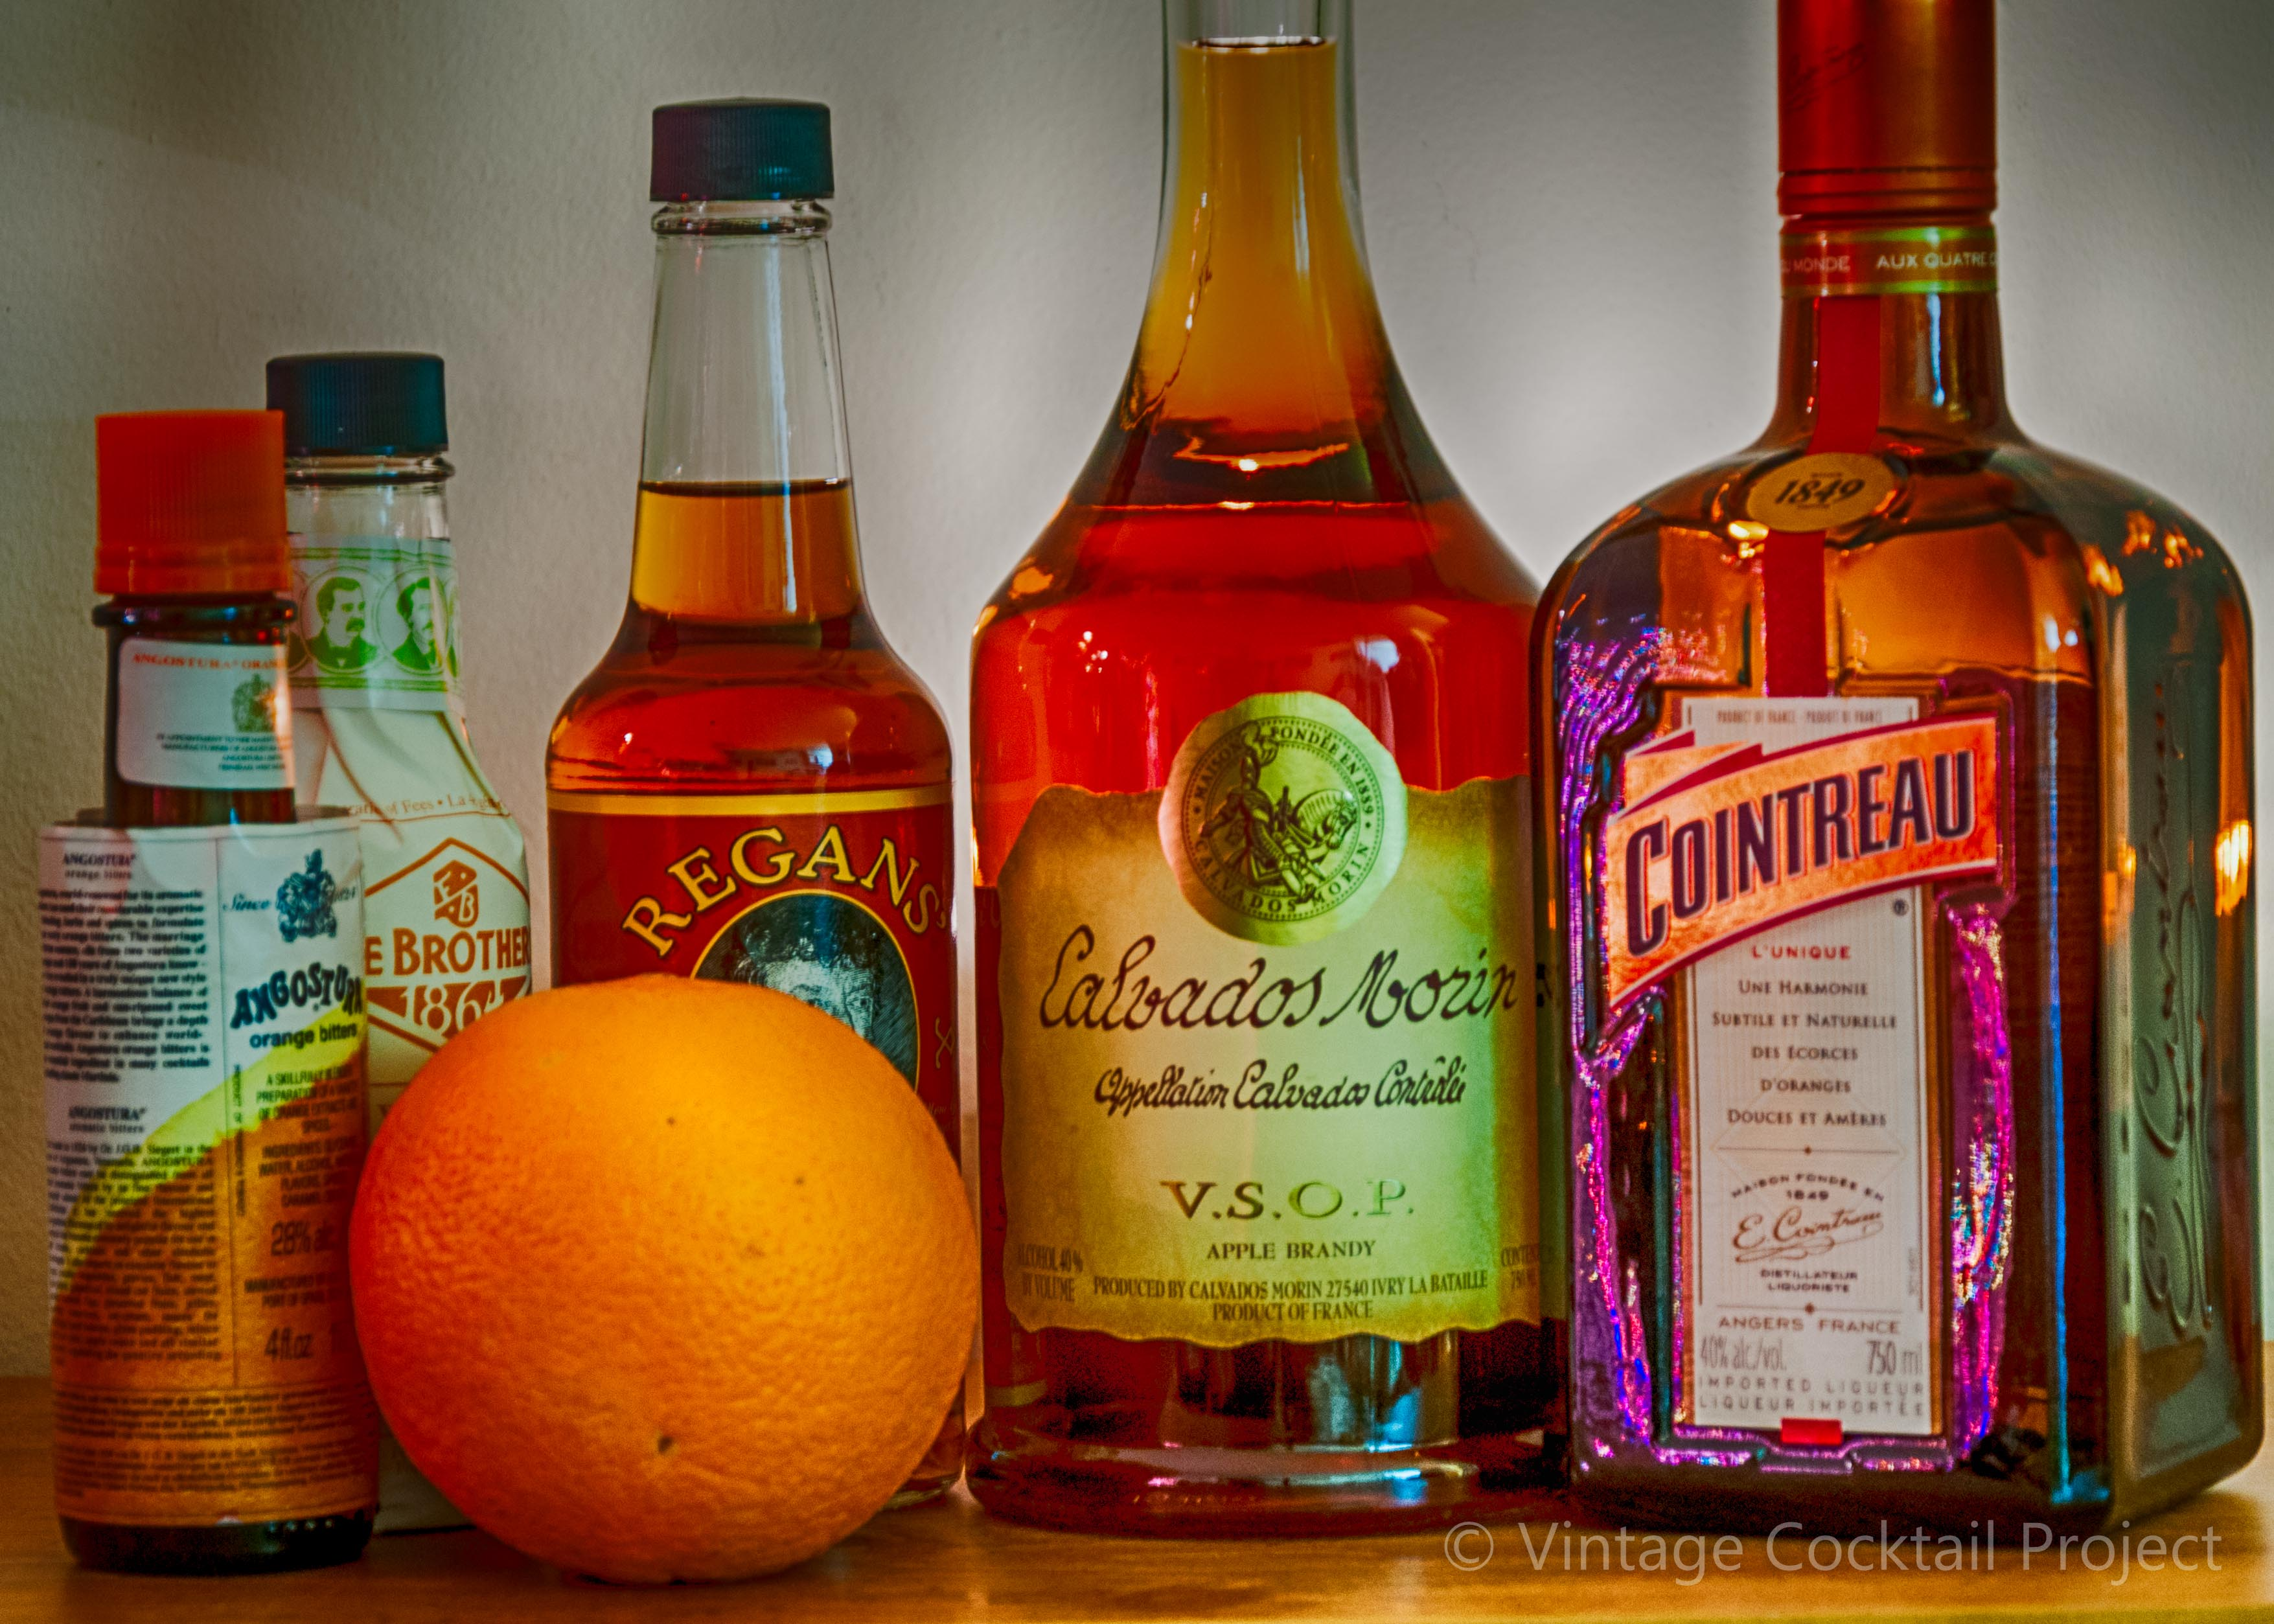 How to drink Calvados